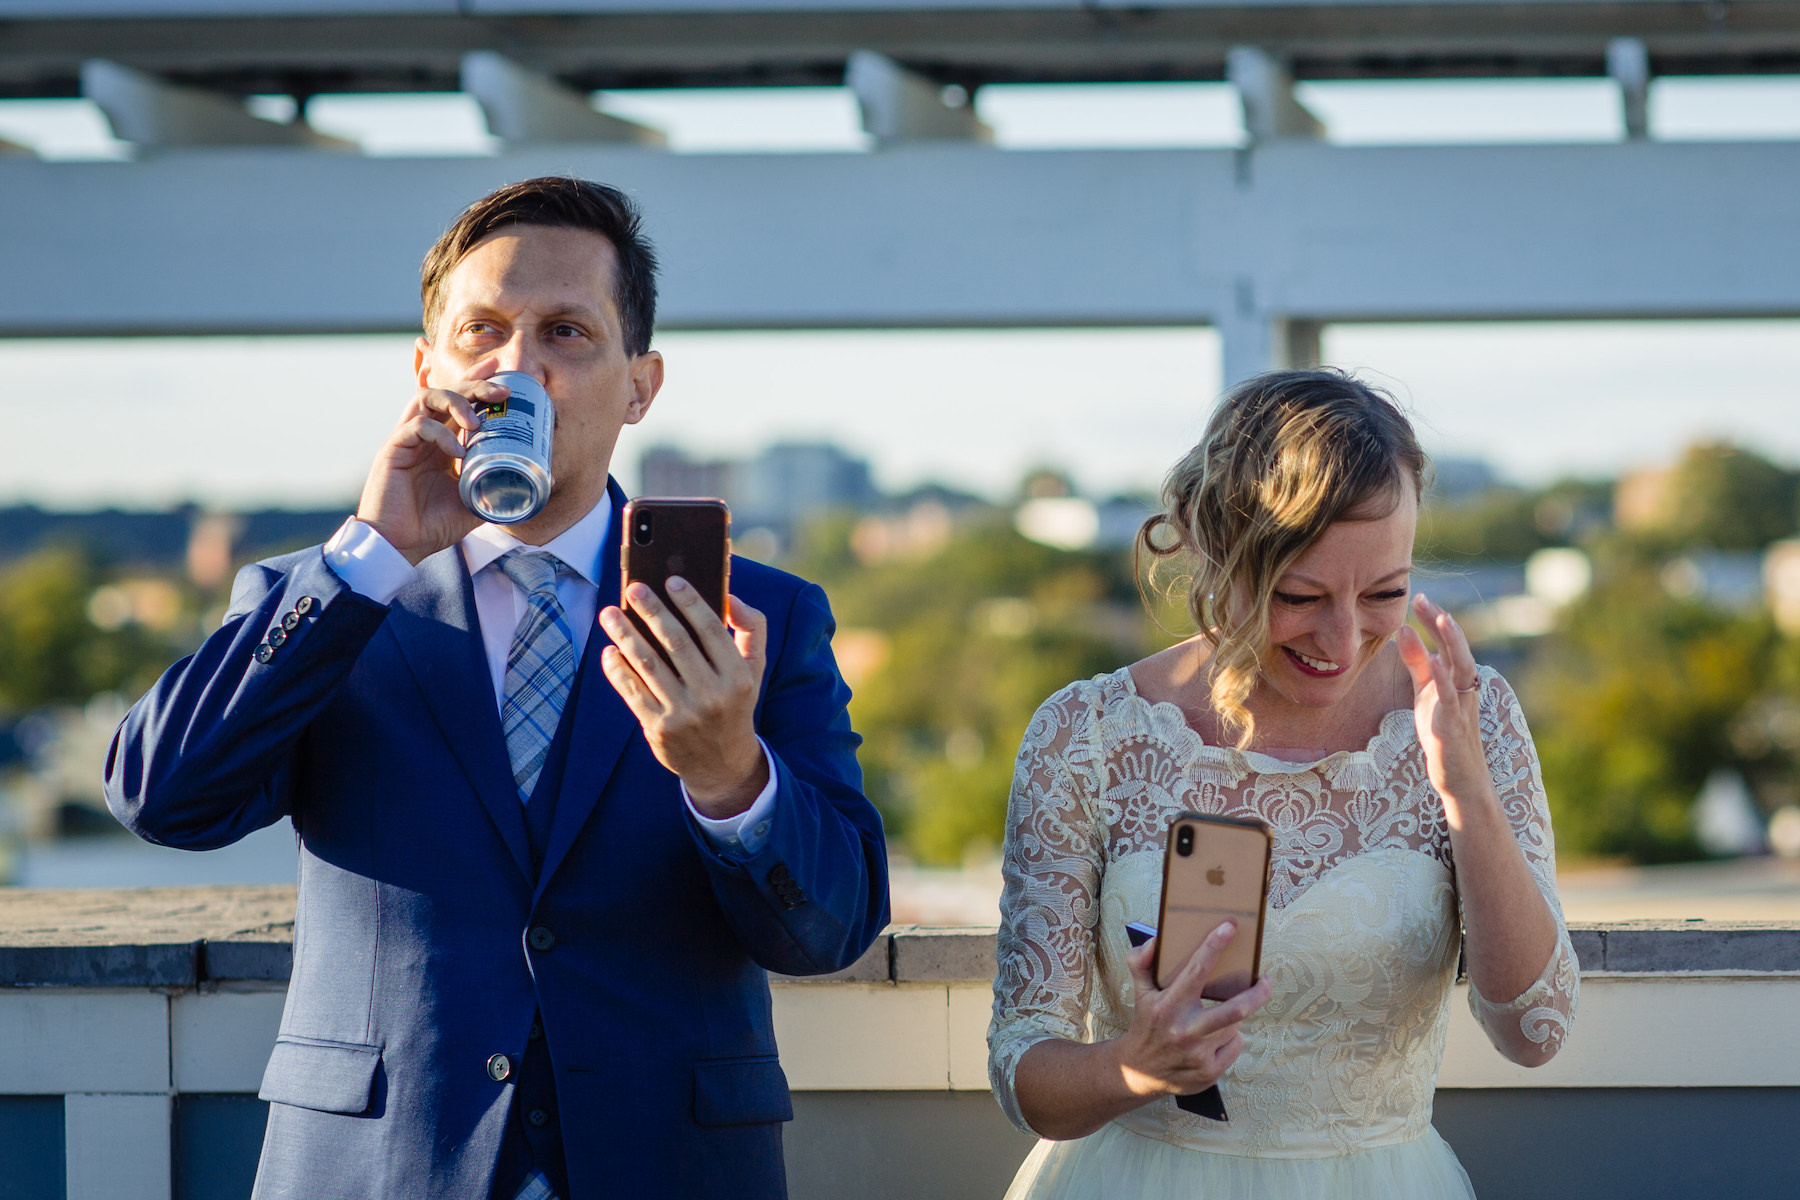 Capitol Hill Wedding Images by a DC Photographer | the bride and groom call their friends and relatives